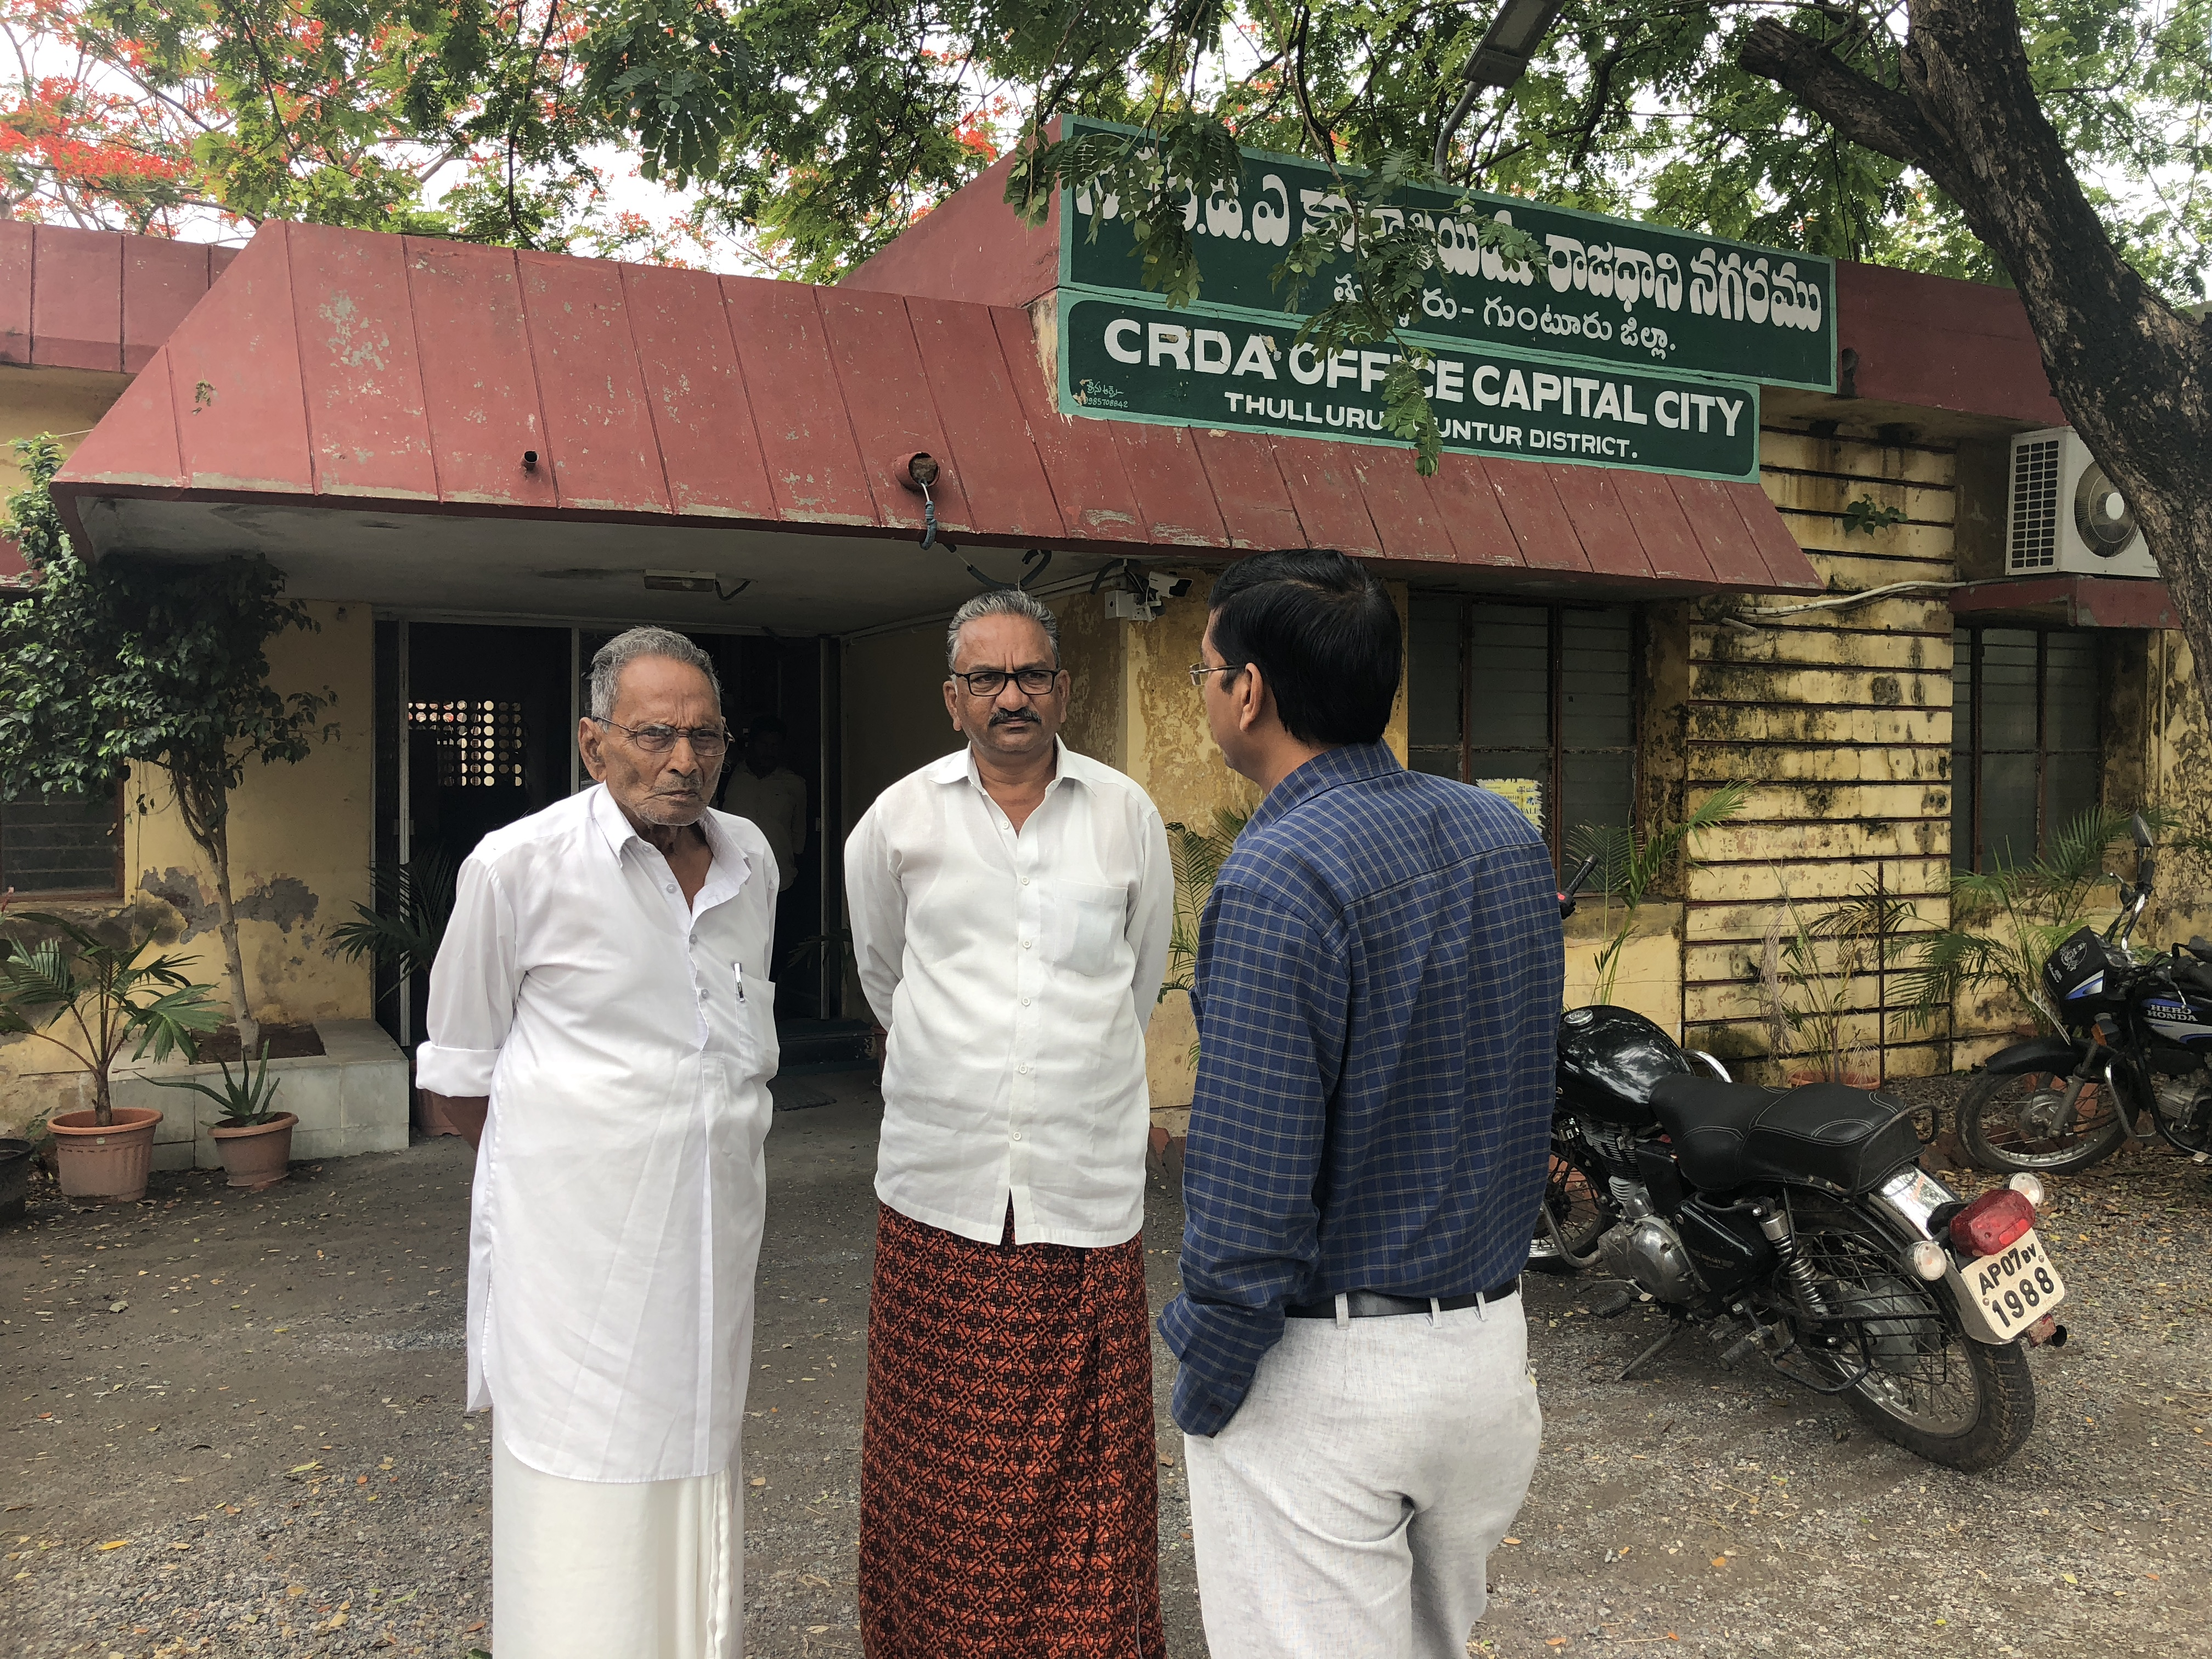 Farmers Kommineni Ramanjaneyulu and Tharigopula Sambasiva Rao talking to PV Suresh Kumar, lead of geographical information systems (GIS) at APCRDA. Photo credit: Quartz/Ananya Bhattacharya